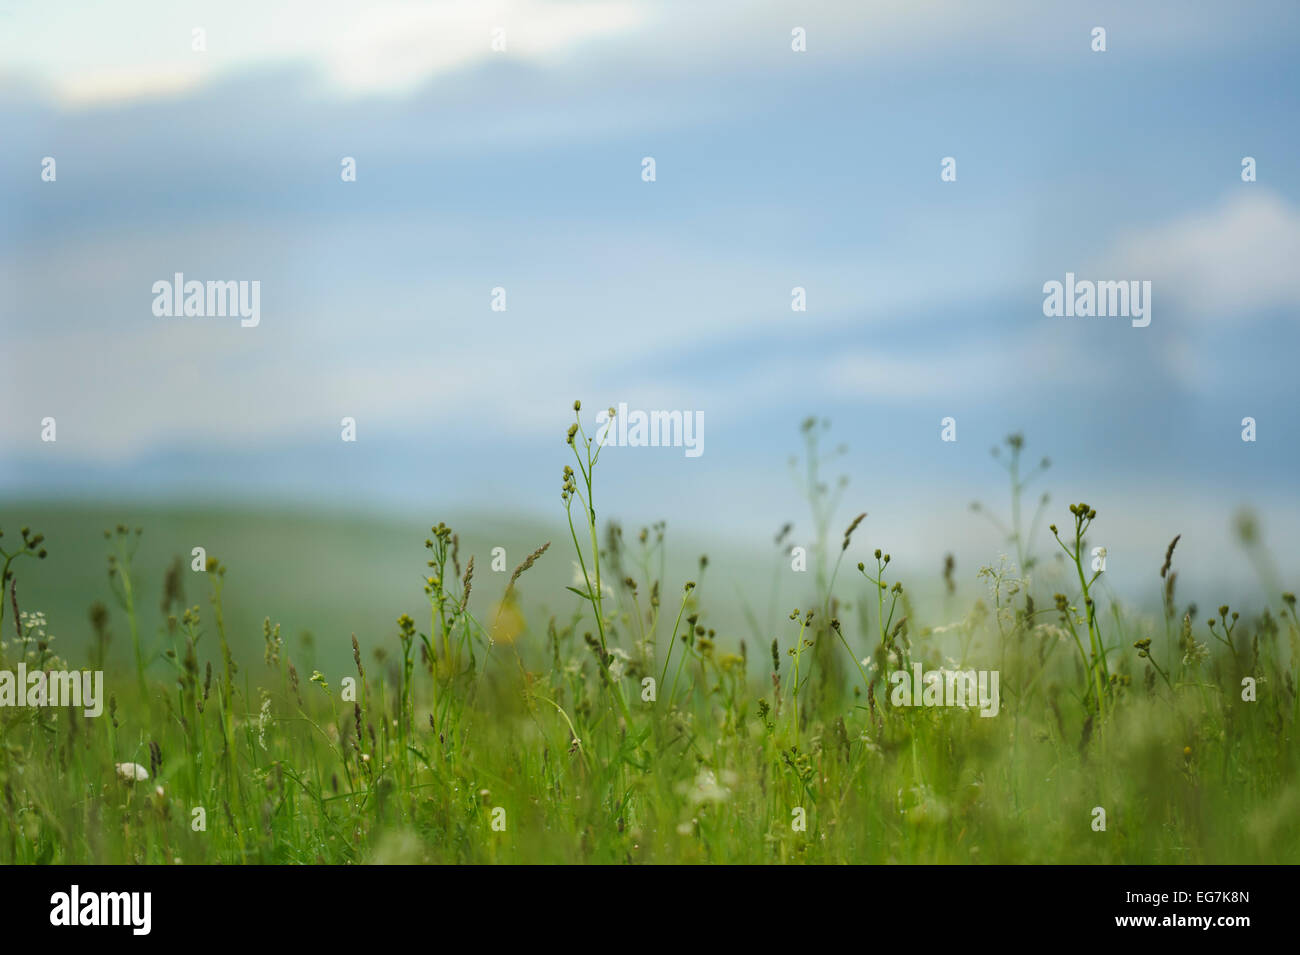 Lowering meadow, cloudy, green grass with white wildflowers and blue sky with clouds in background. Overcast, promising Stock Photo